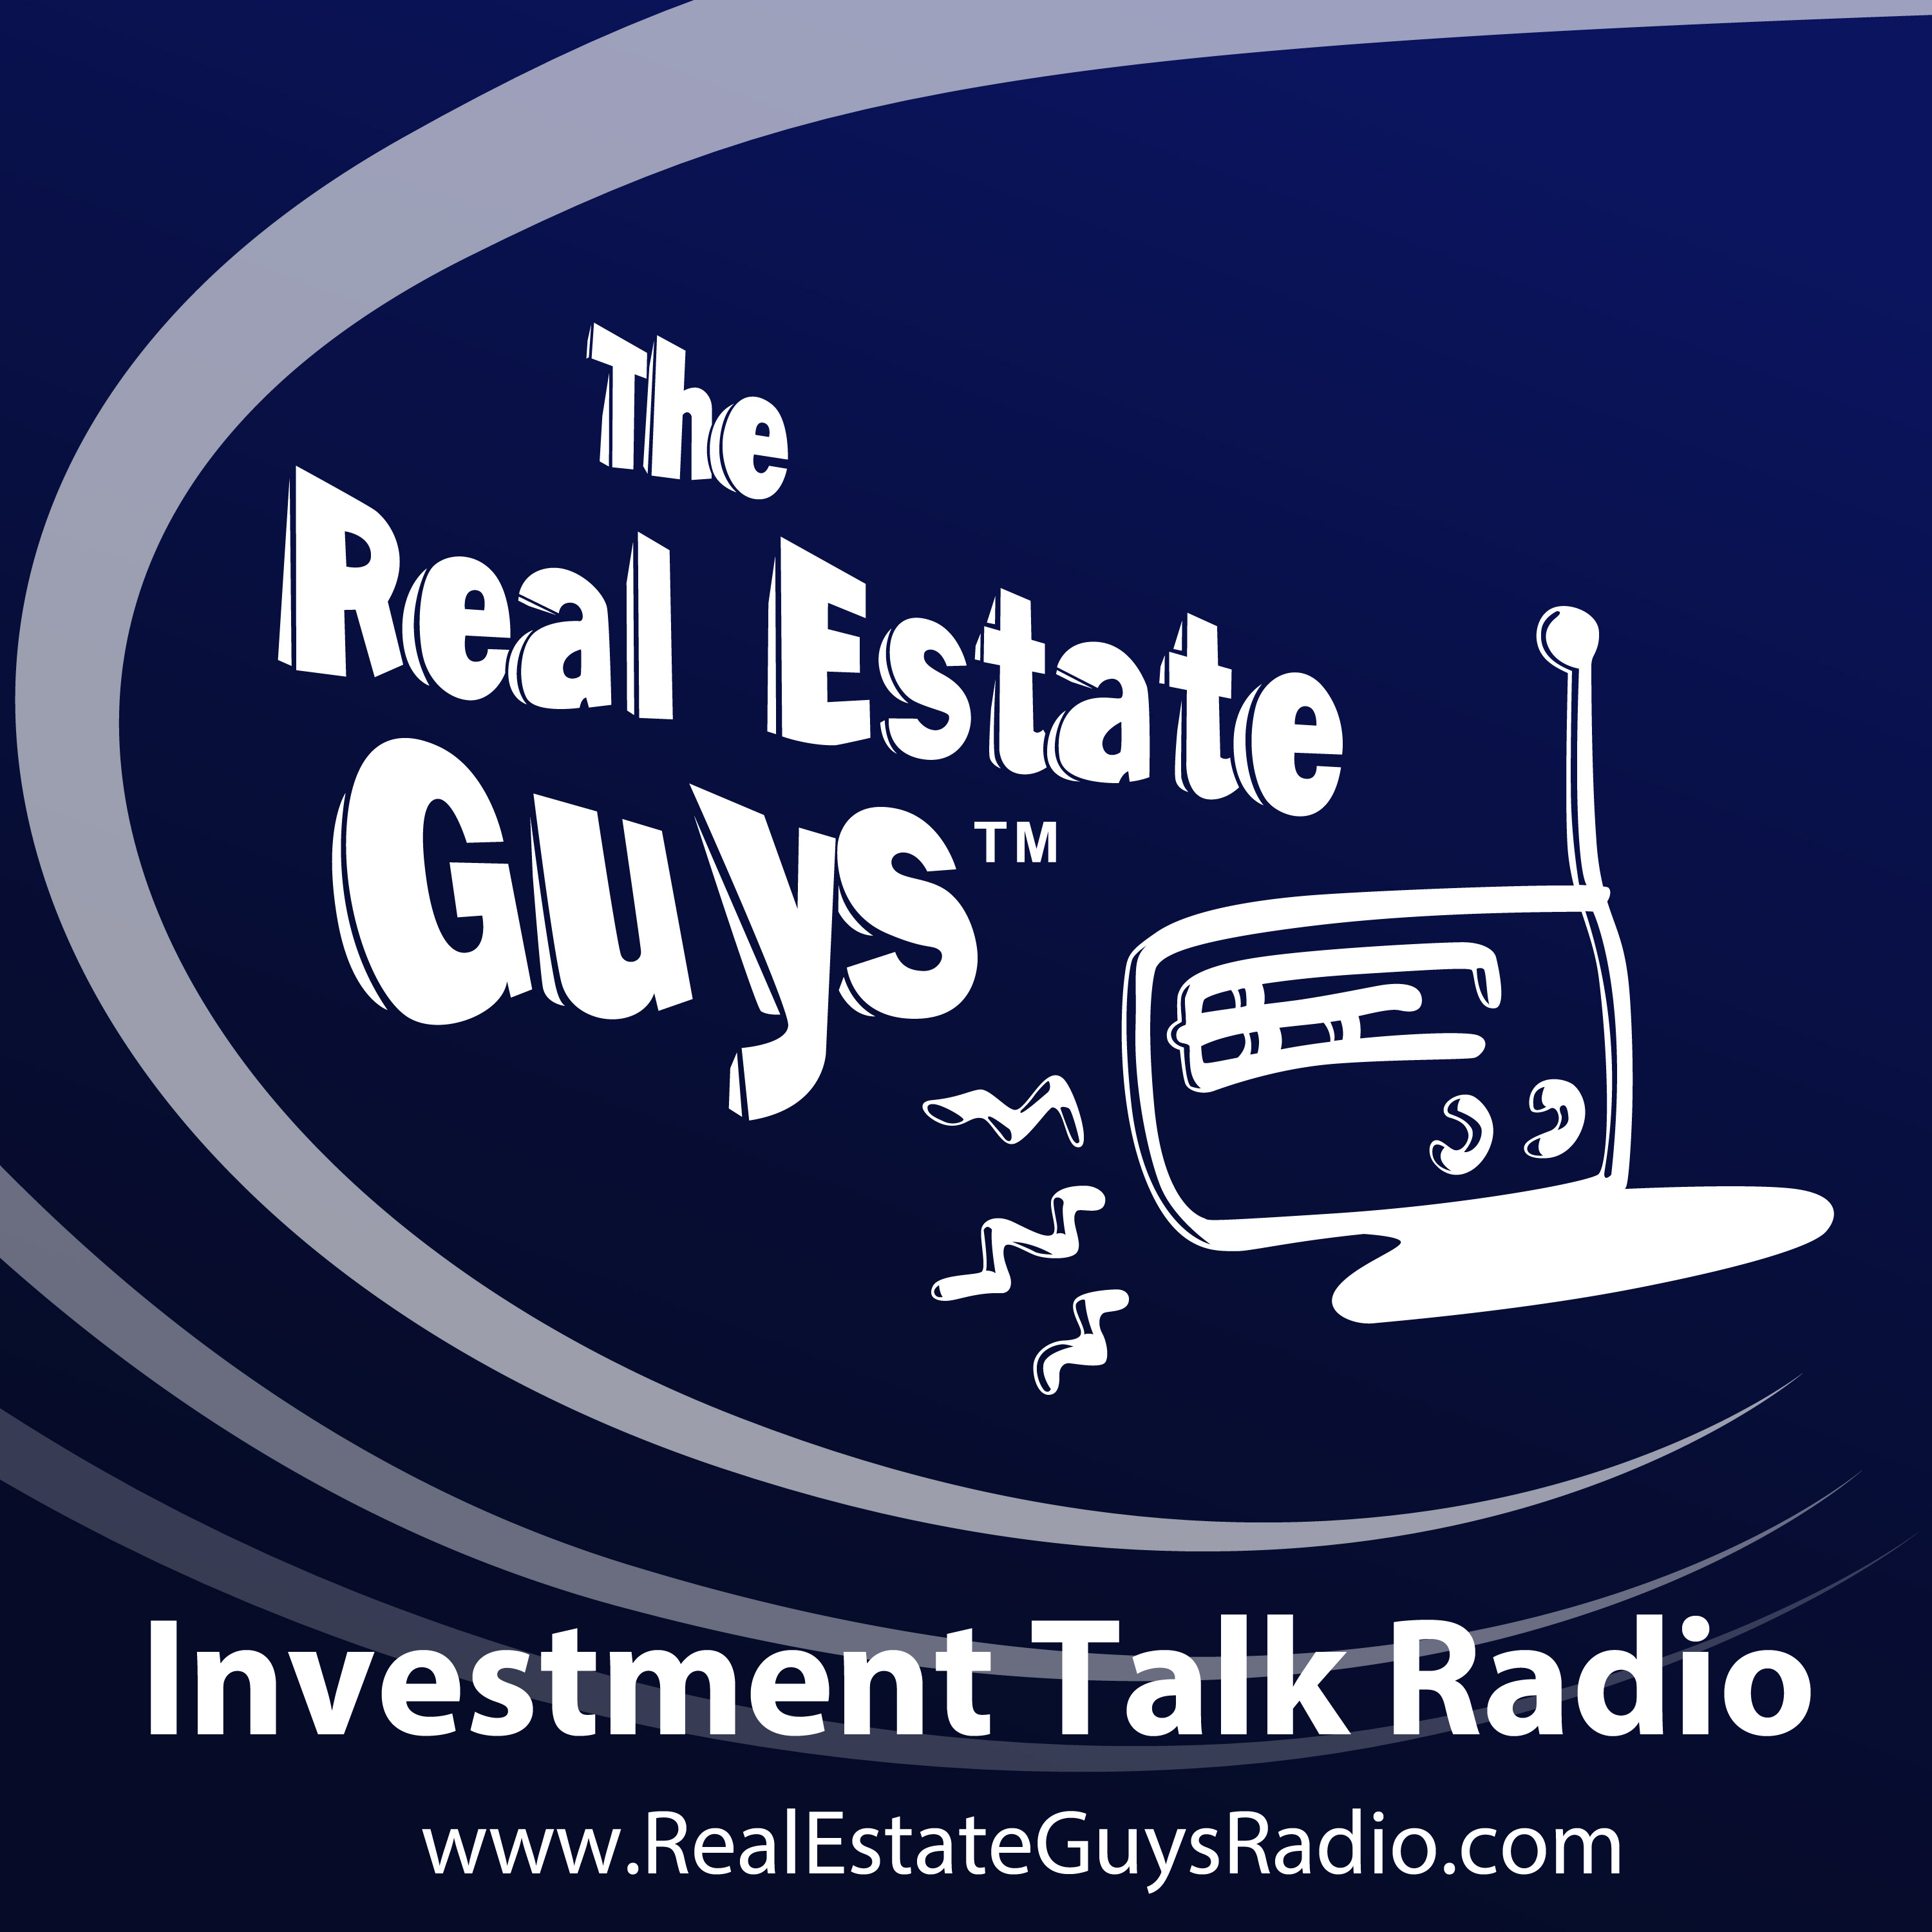 Ask The Guys - Seller Financing, Inspection Tips and Negative Cash Flow